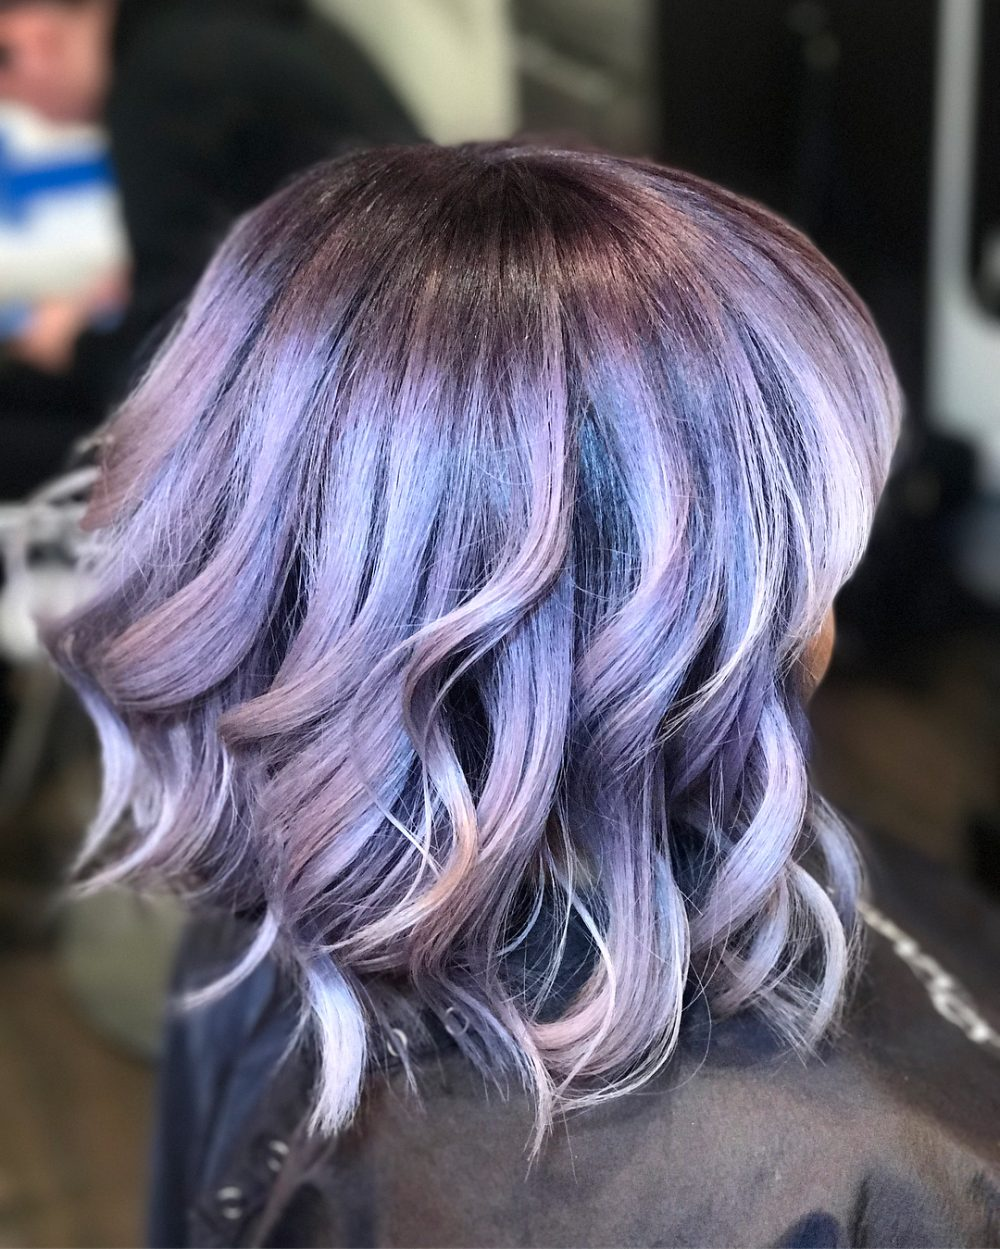 Ashy Plum into Lavender hairstyle